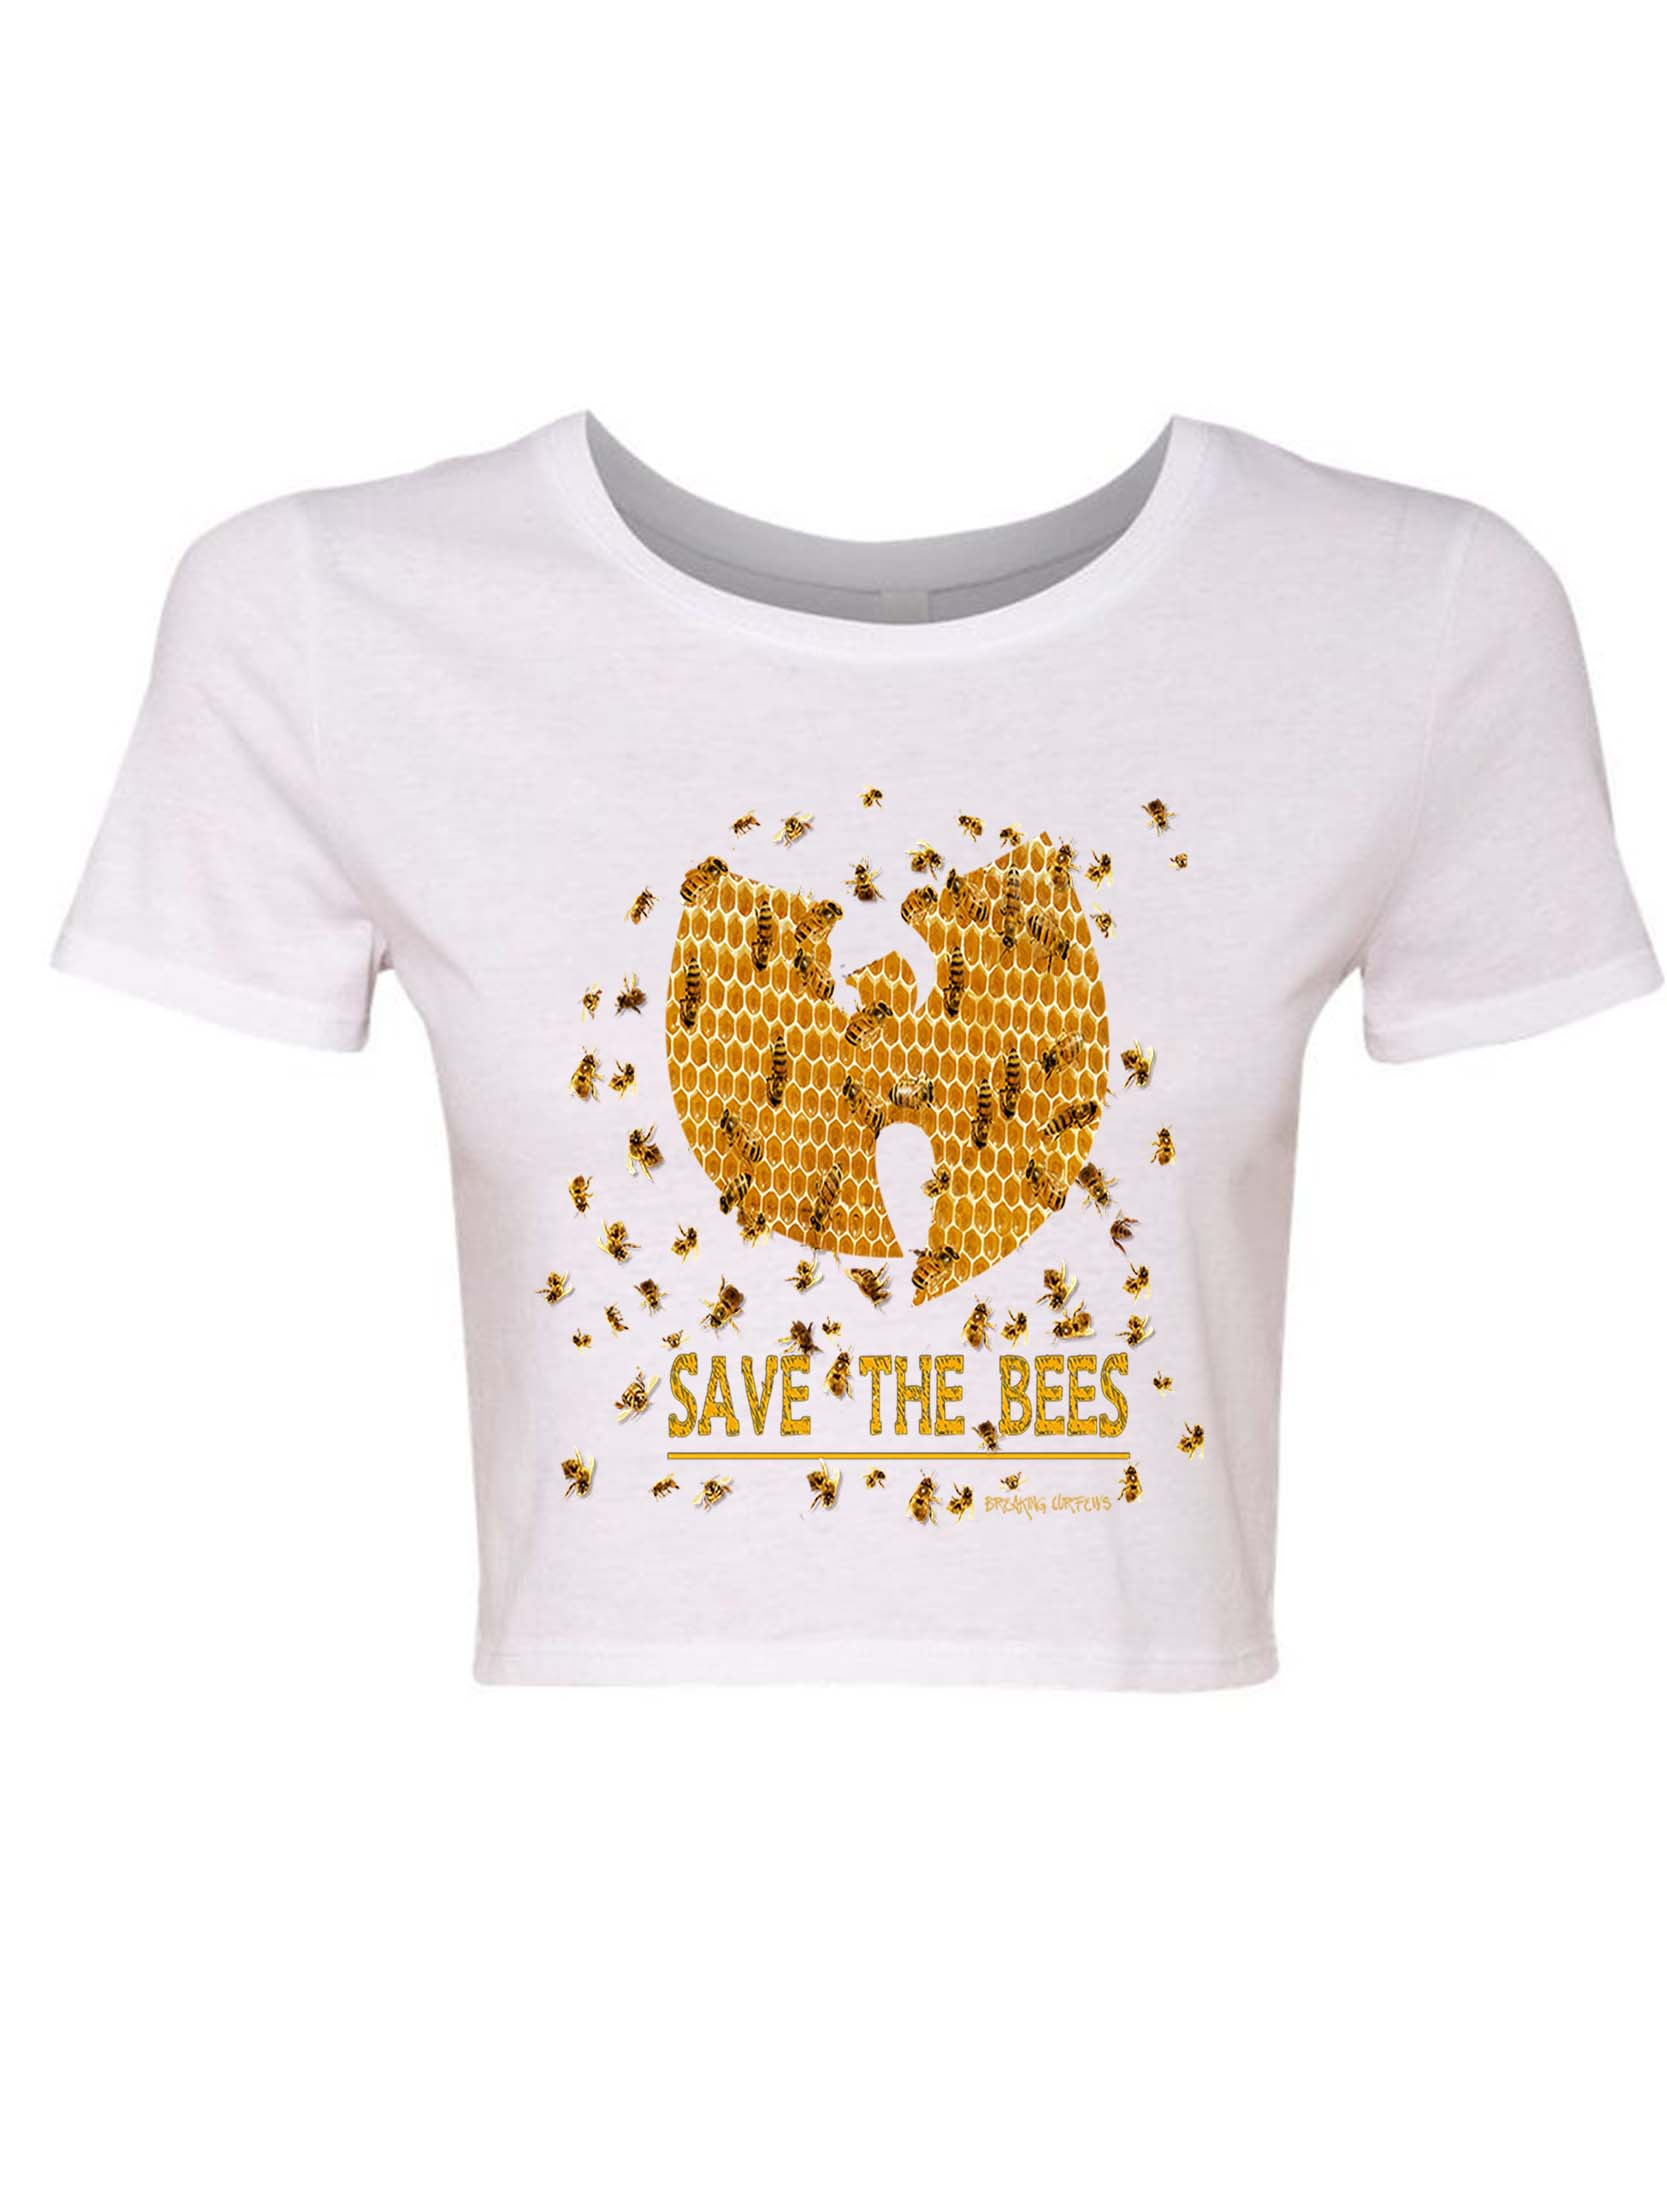 8dd6d80ac4f818 Breaking Curfews » Wu Tang Clan Save The Bees Womens Hip Hop Crop T ...